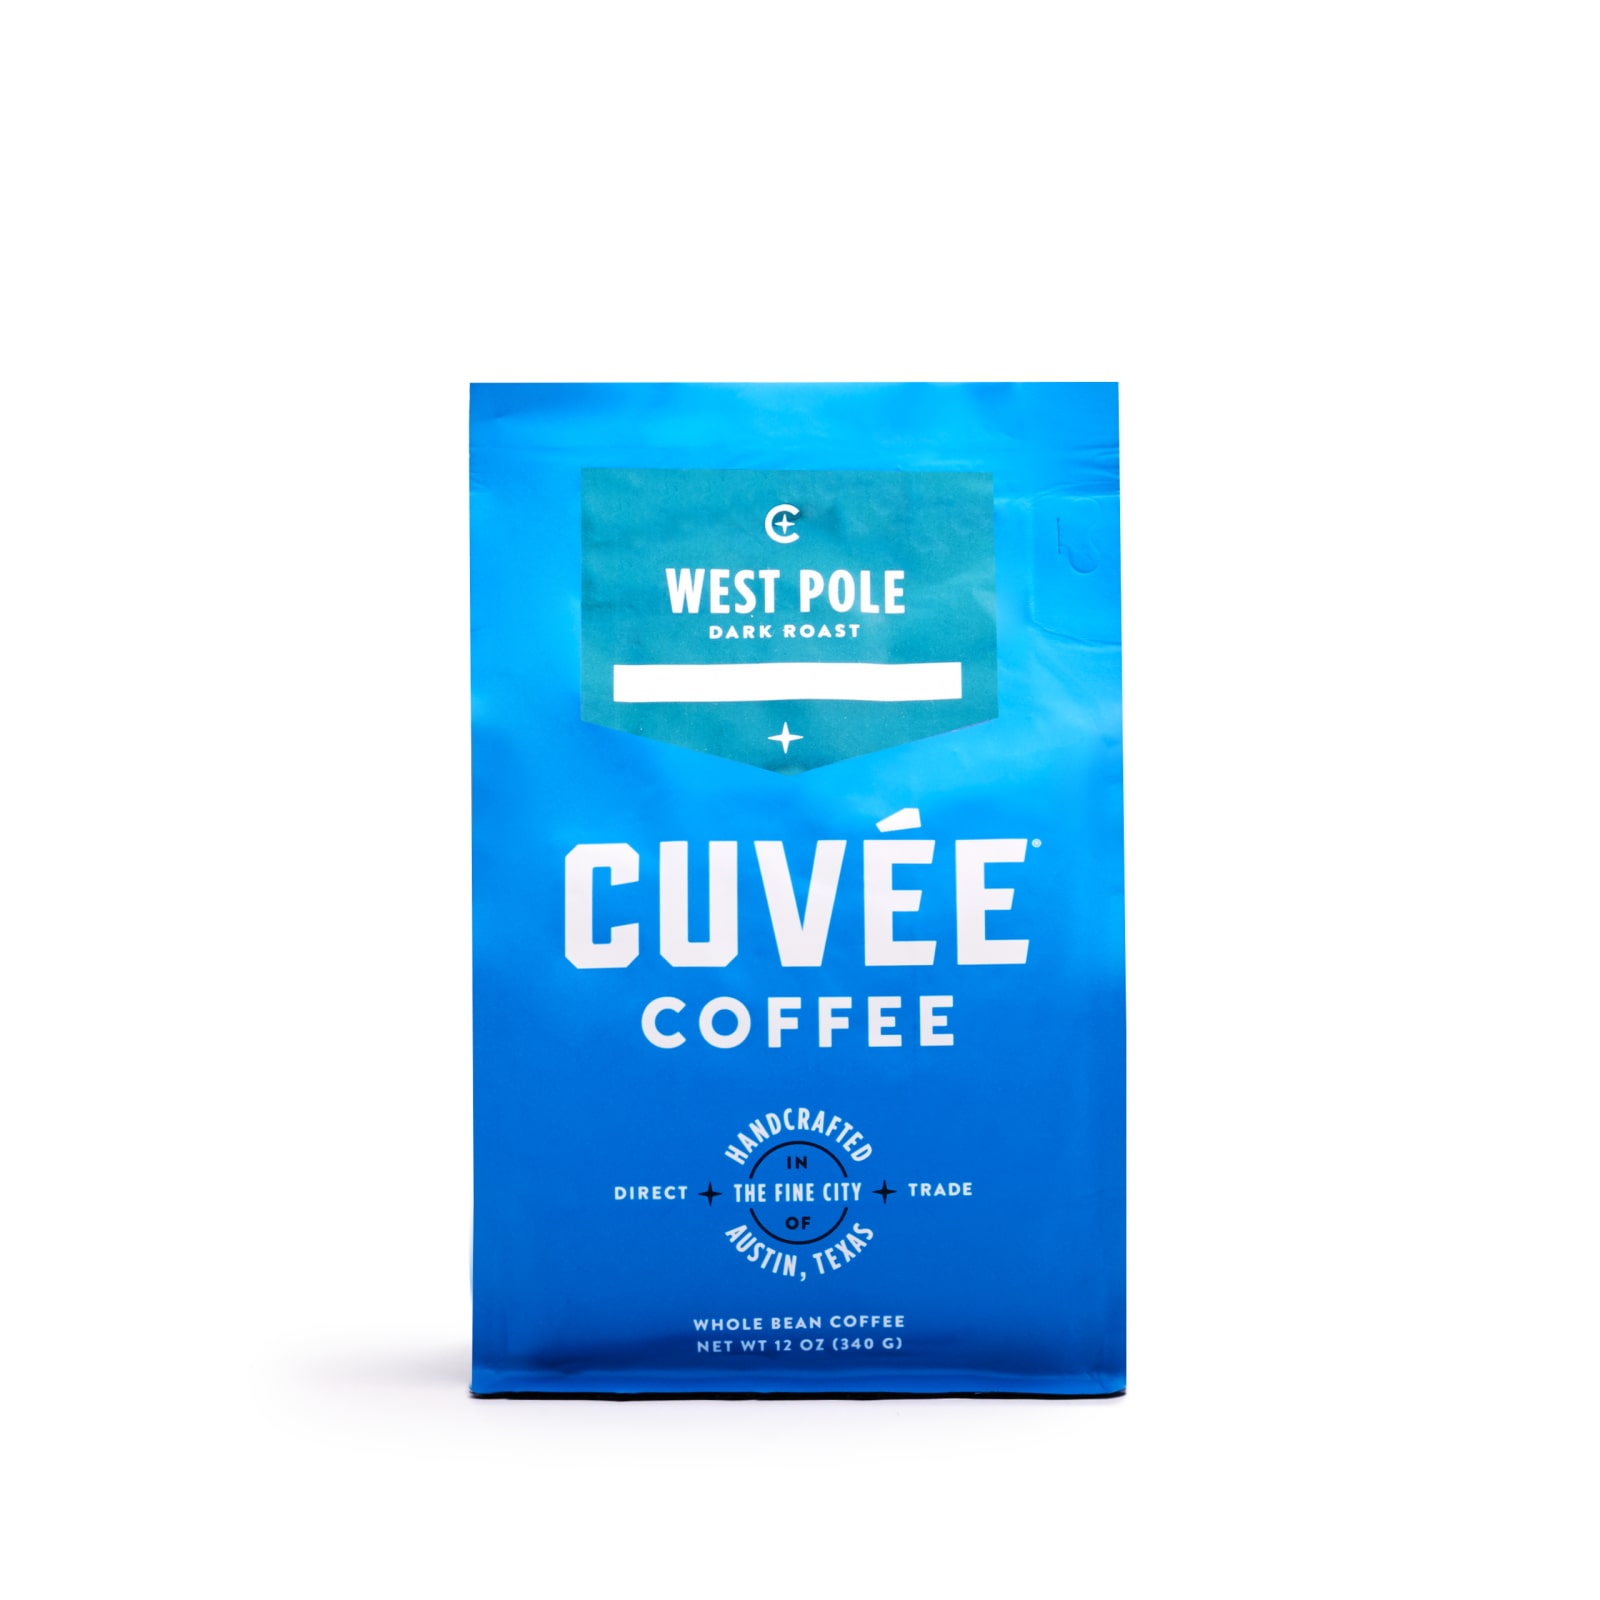 West Pole Dark Roast